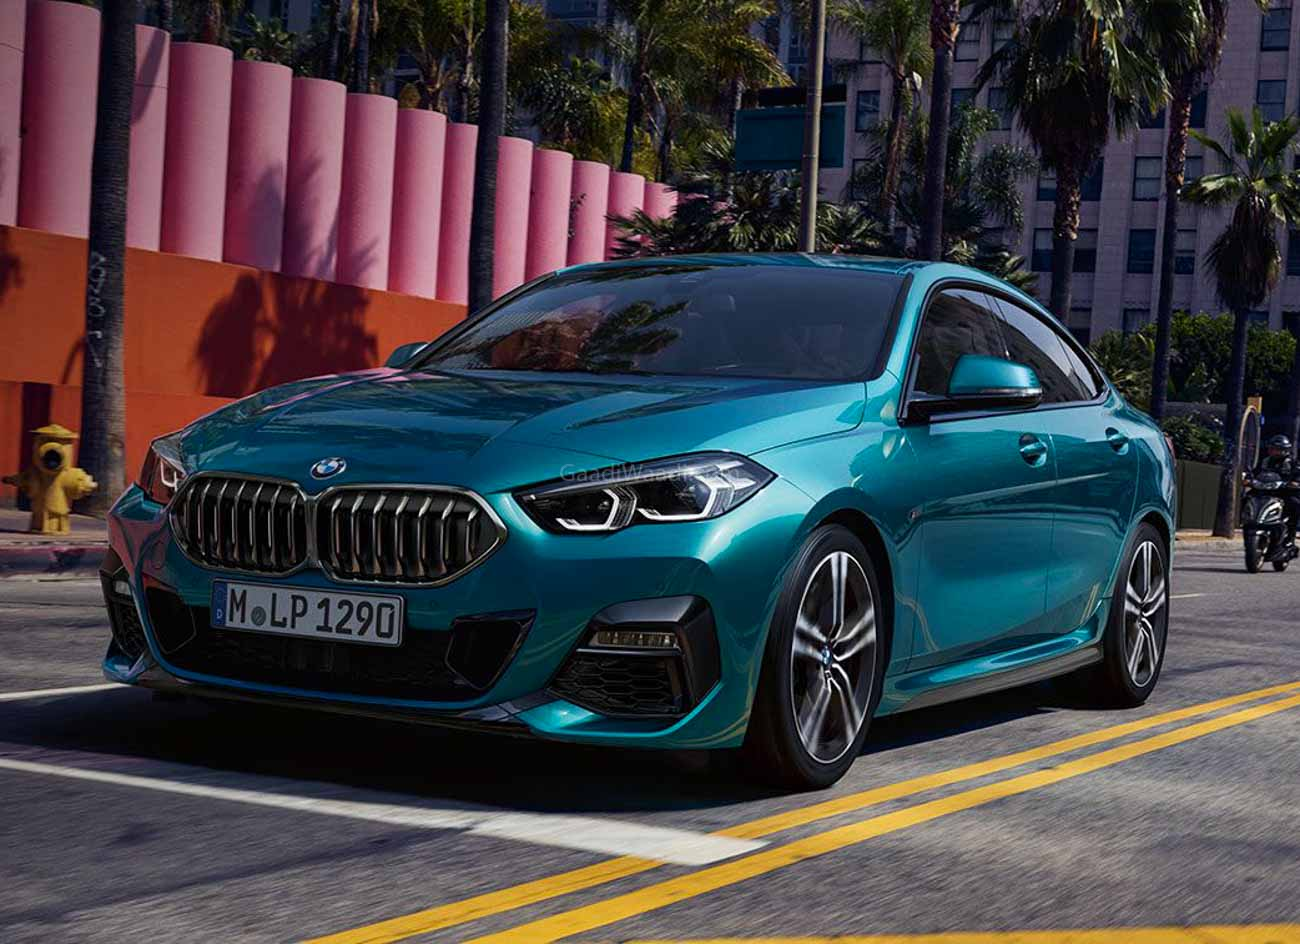 BMW 2 Series Gran Coupe Launched In India At Rs. 39.30 Lakh